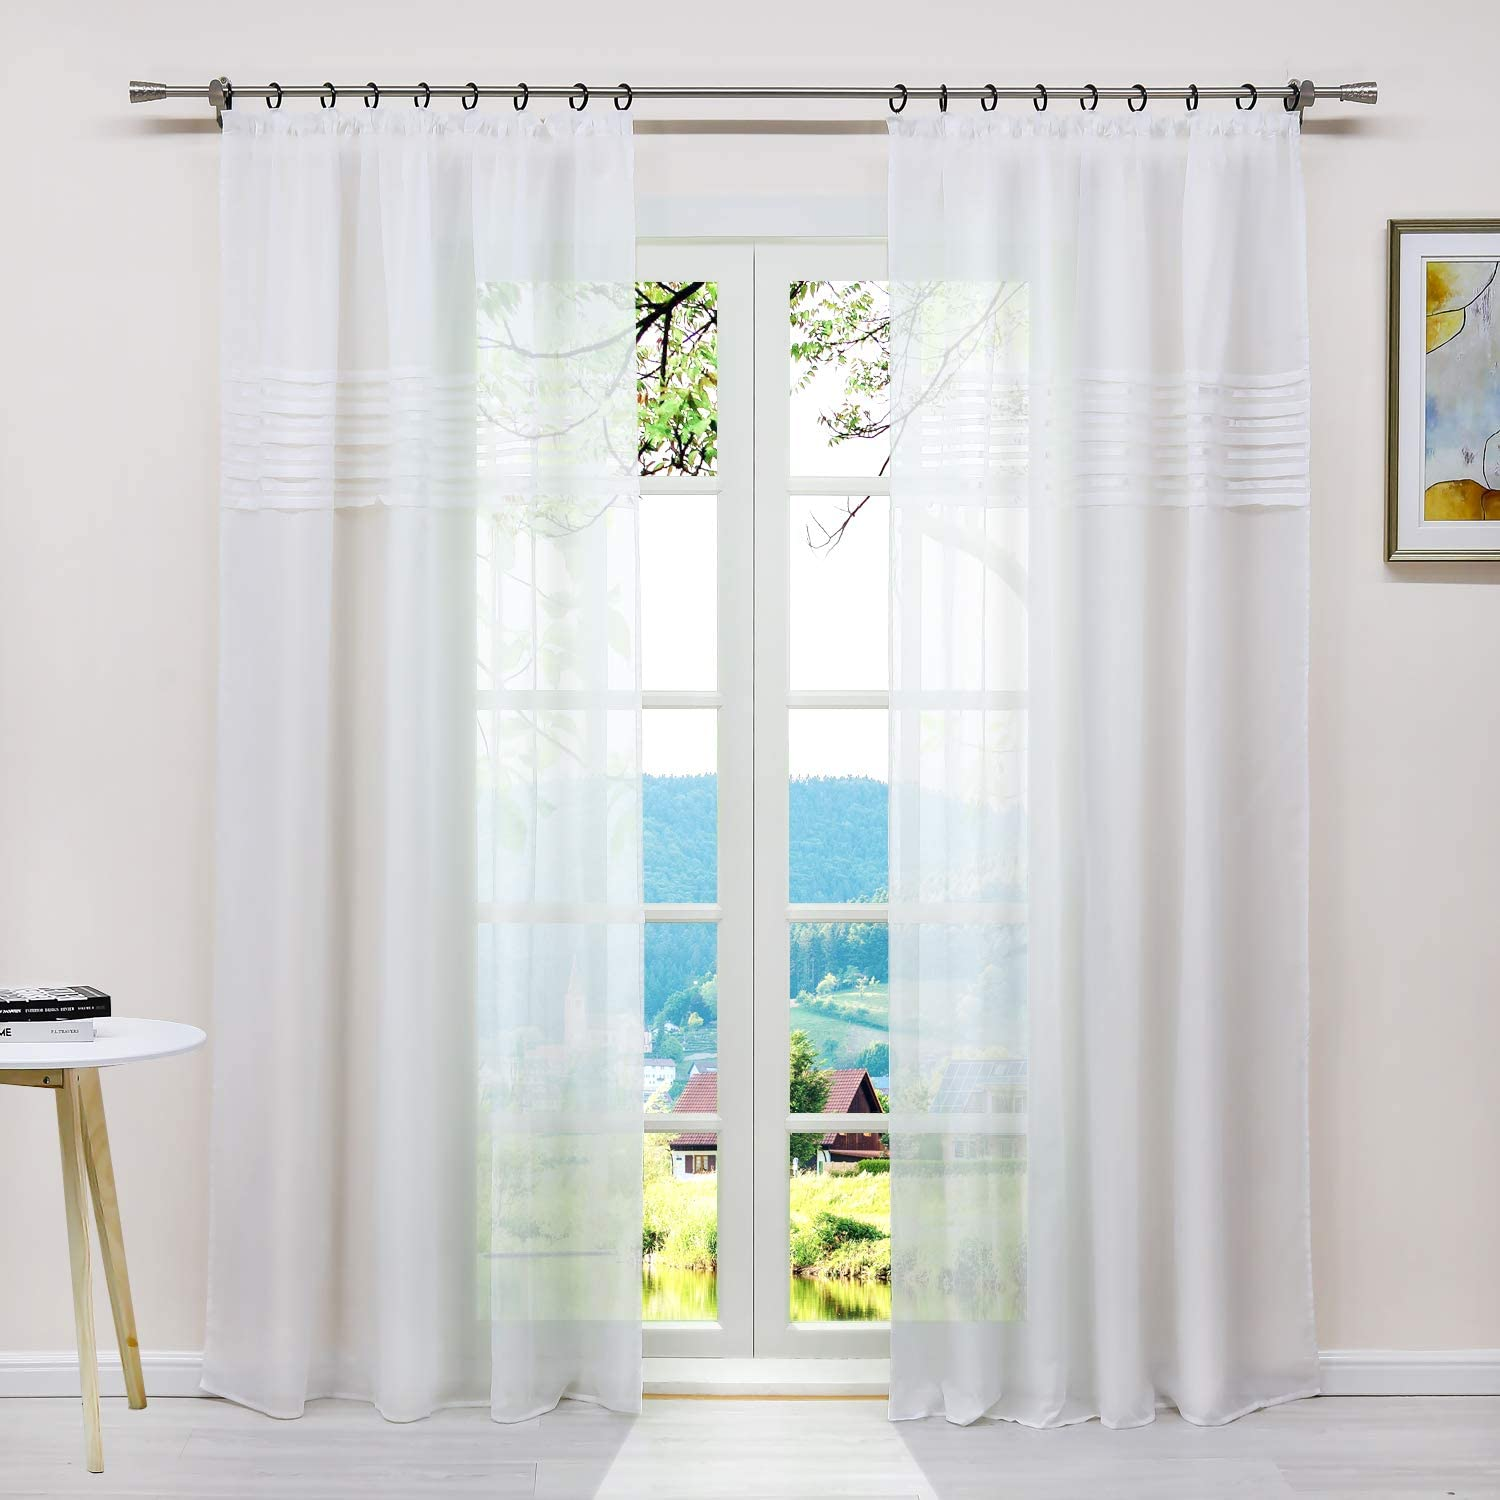 Yujiao Mao Sheer Window Curtains Voile Panels for Small Windows, Kitchen, Living Room and Bedroom,1pc(White,W54 x L54 inch)